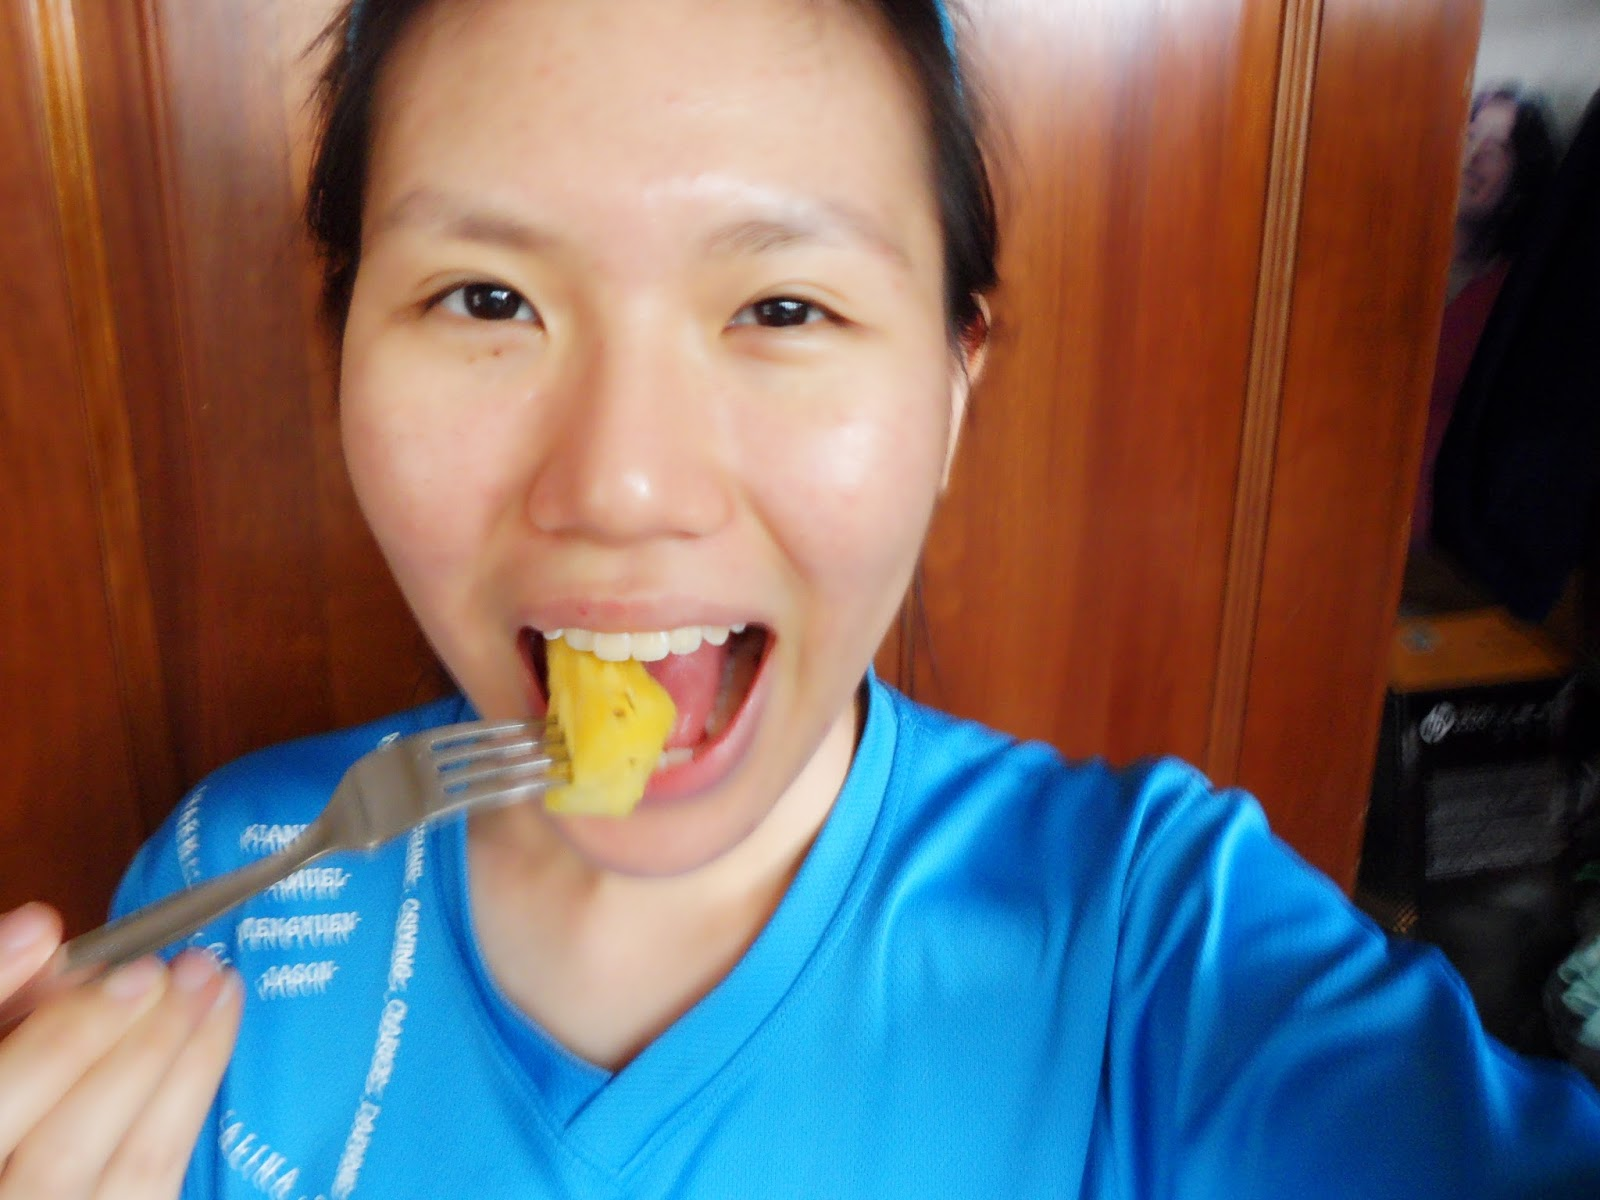 Skincare exfoliate with enzymes diy pineapple face mask cindity i was left with the last slice when i finally thought of masking my face now its official home pampering time how does pineapple masks work solutioingenieria Choice Image